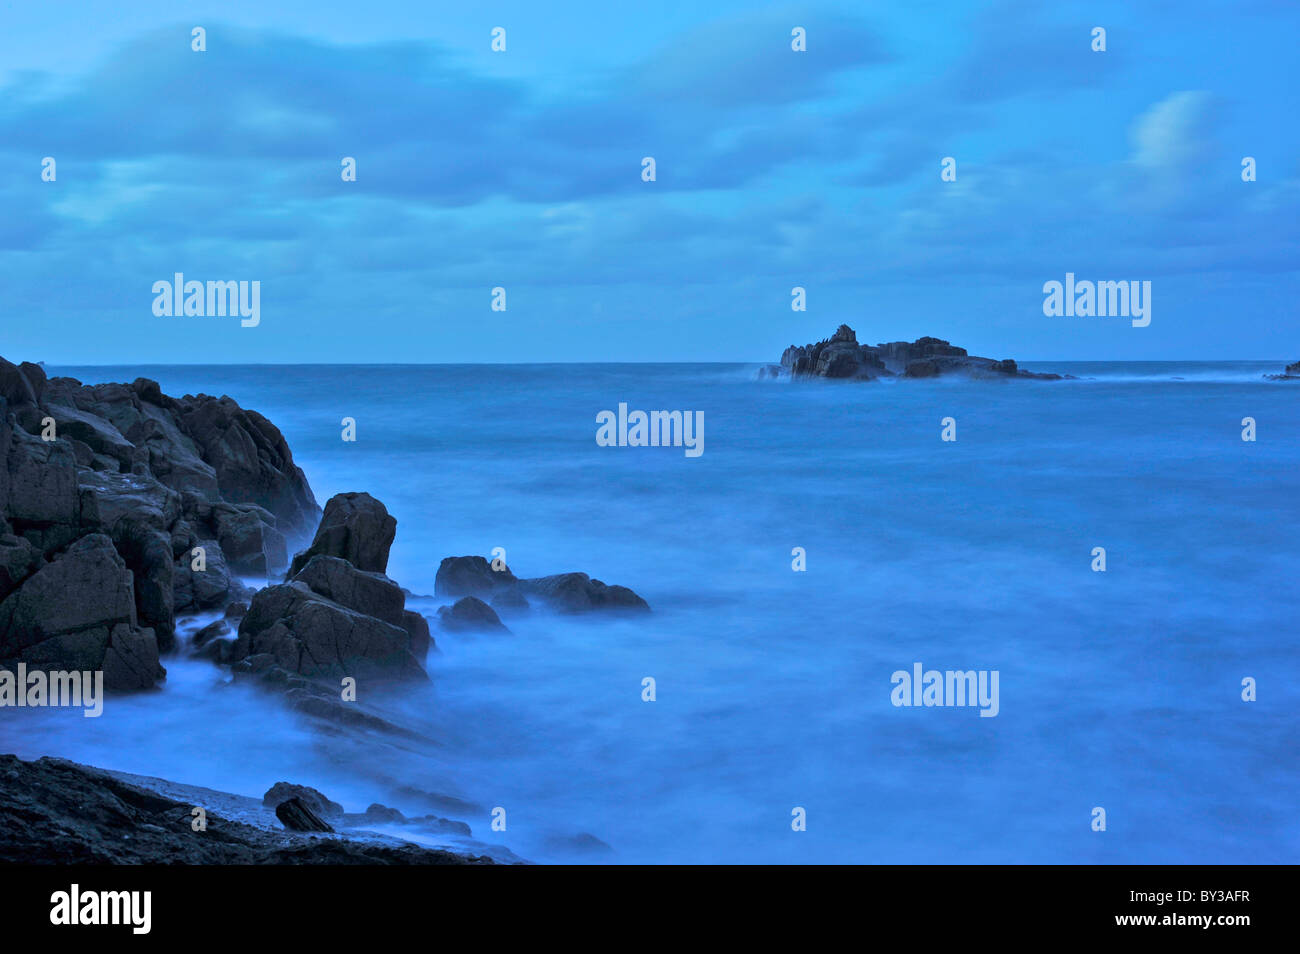 Late Evening Stormy Blue Seascape Sea Ethereal - Stock Image